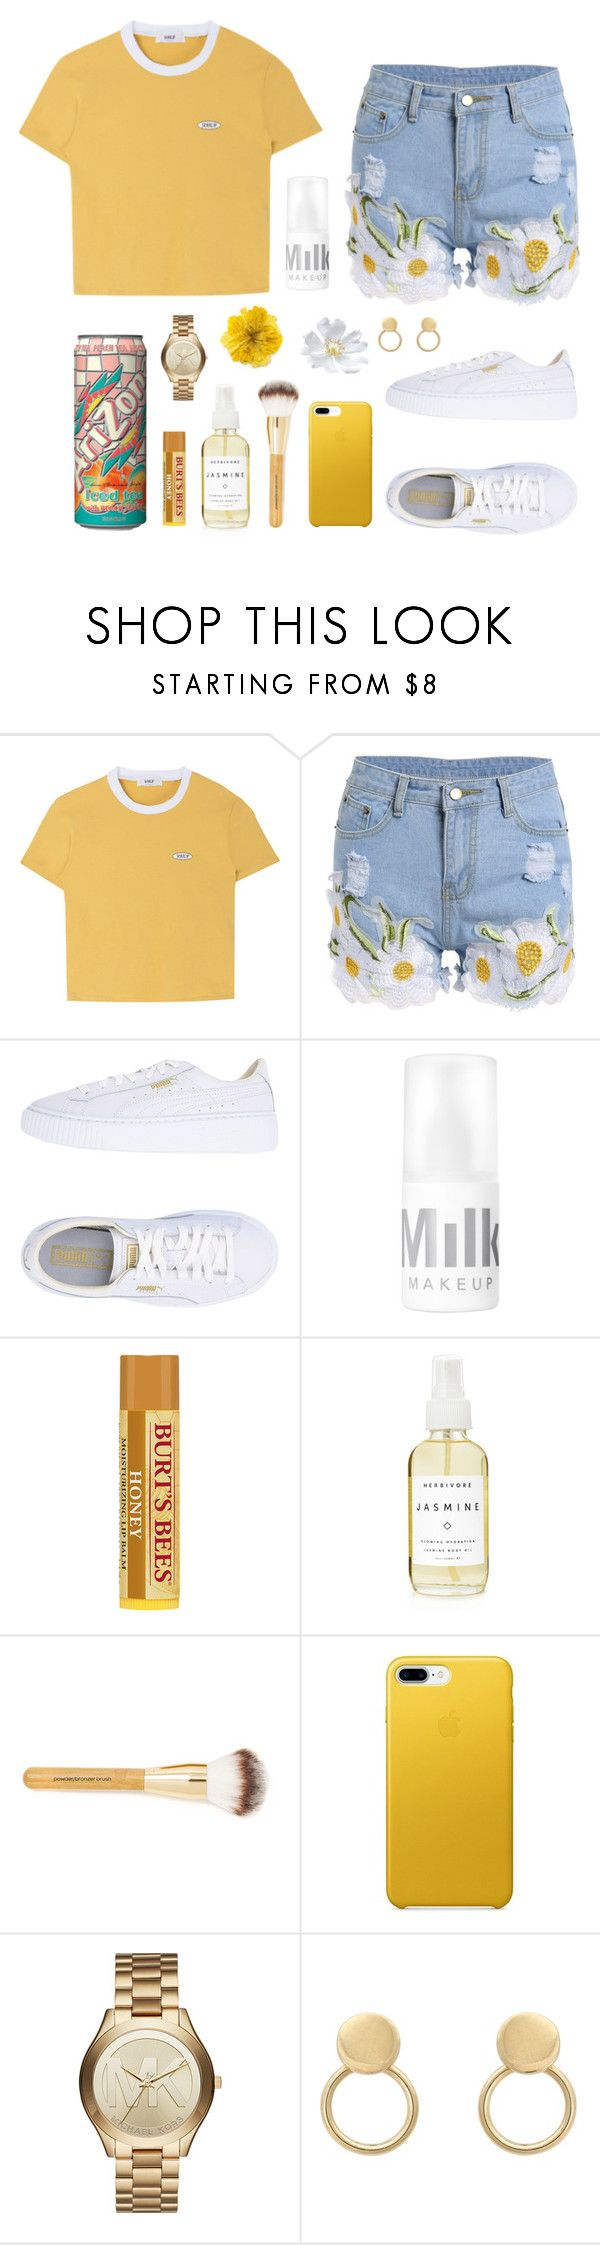 """""""911/ Lonely 🌼"""" by cheyhall ❤ liked on Polyvore featuring Puma, A Weathered Penny, Michael Kors and Gucci"""